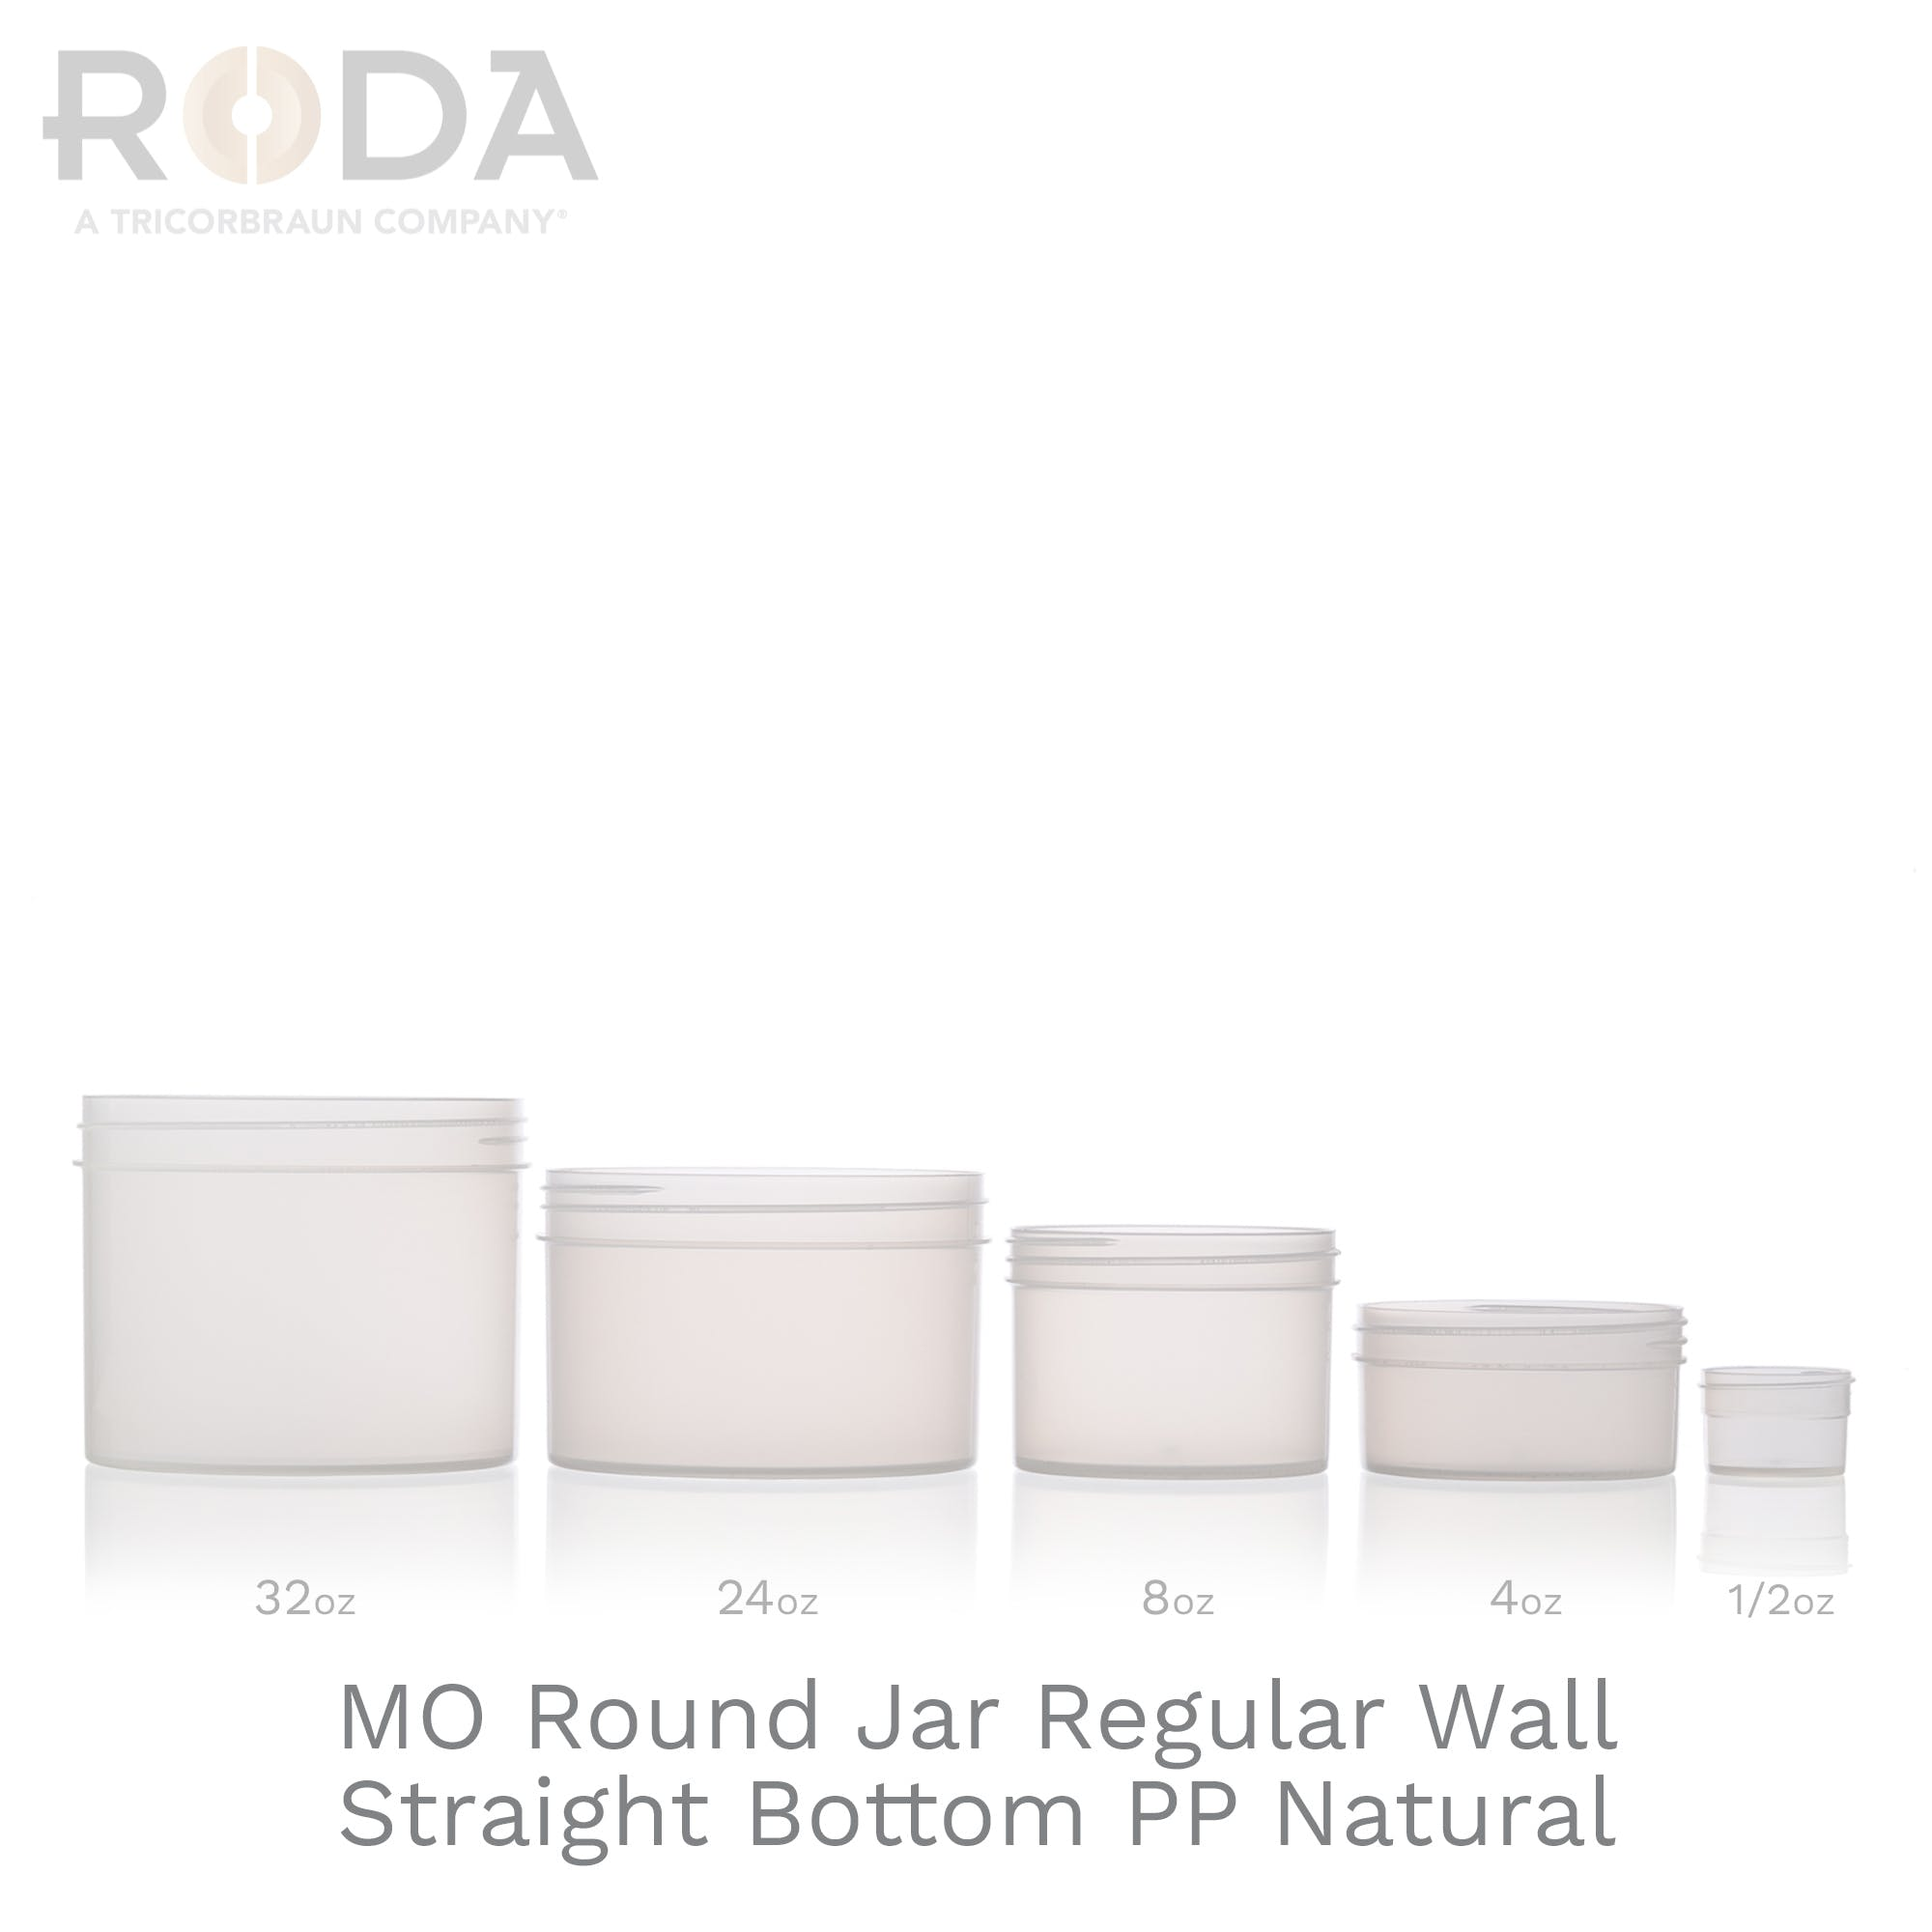 MO Round Jar Regular Wall Straight Bottom PP Natural